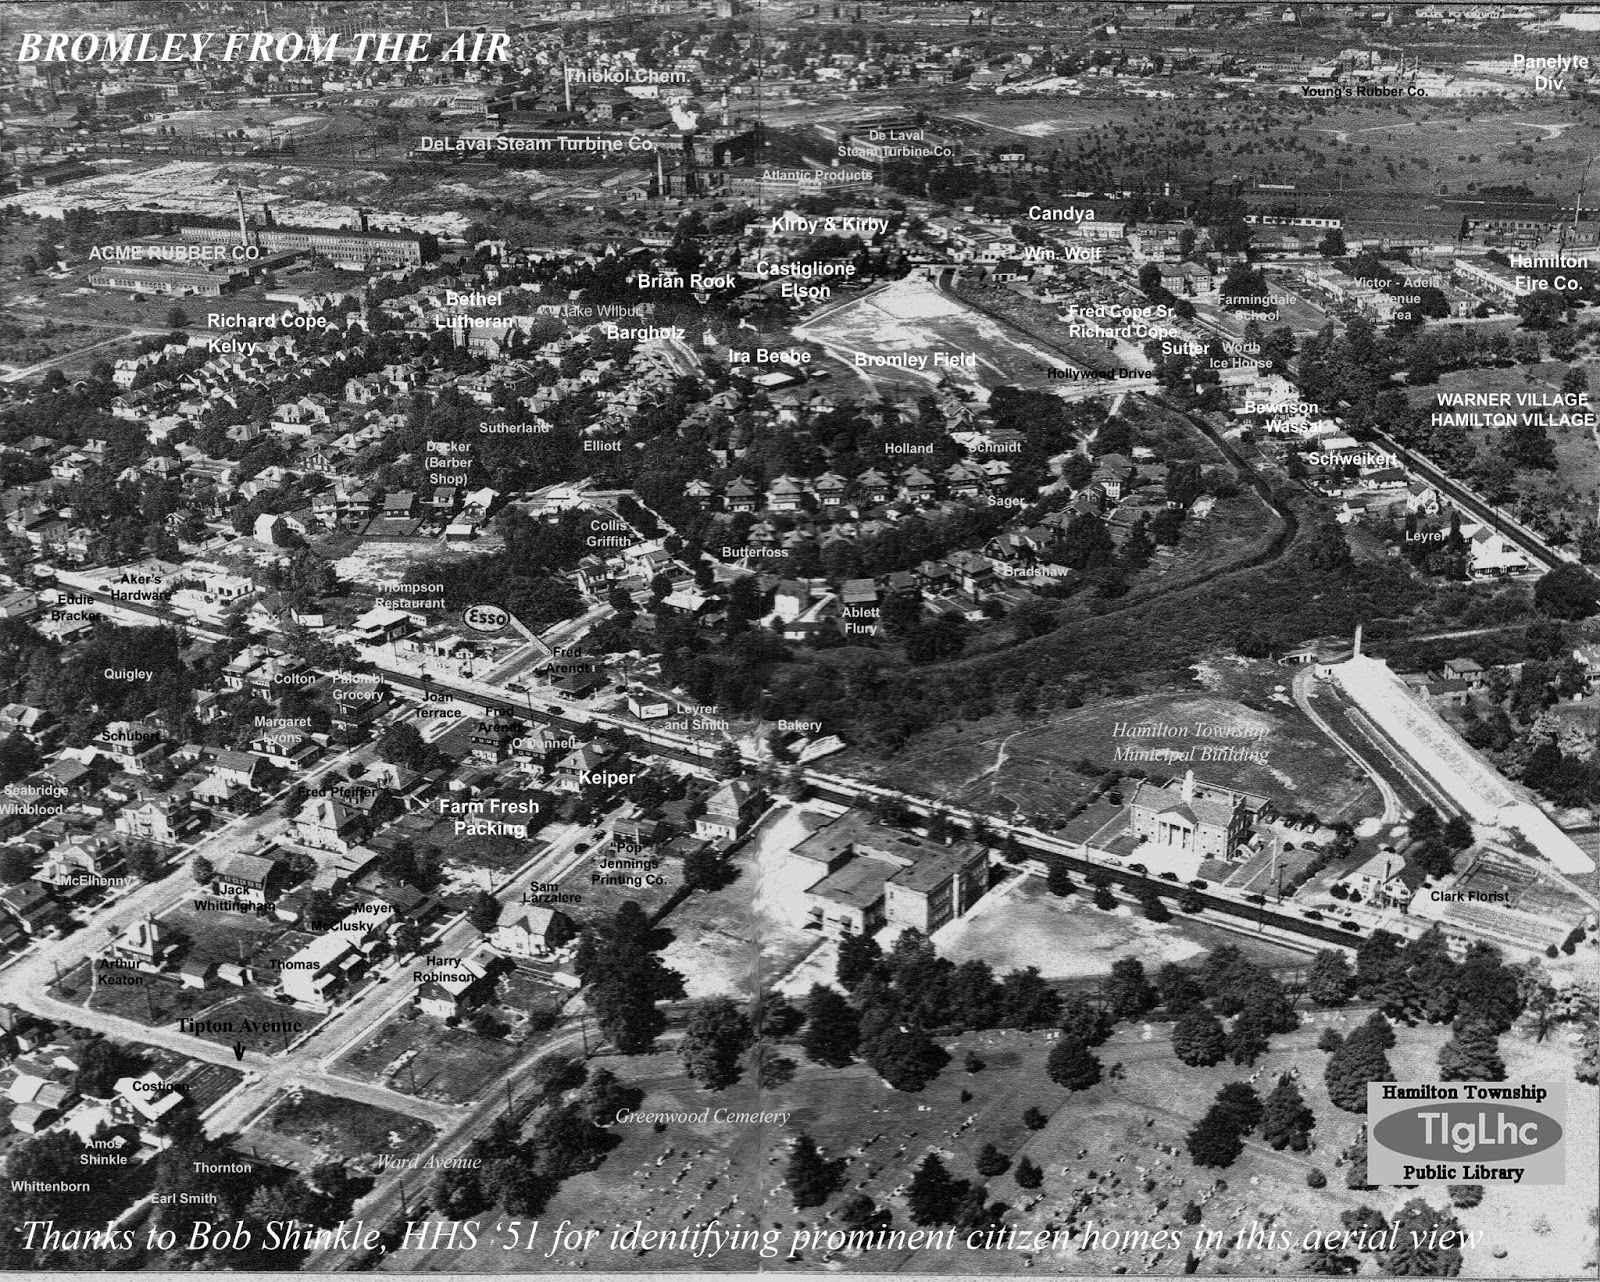 LMany Years Ago I Acquired This Incredibly Fascinating Aerial Photo Of My Bromley As Seen By A Pilot Flying Over Greenwood Cemetery And Taking